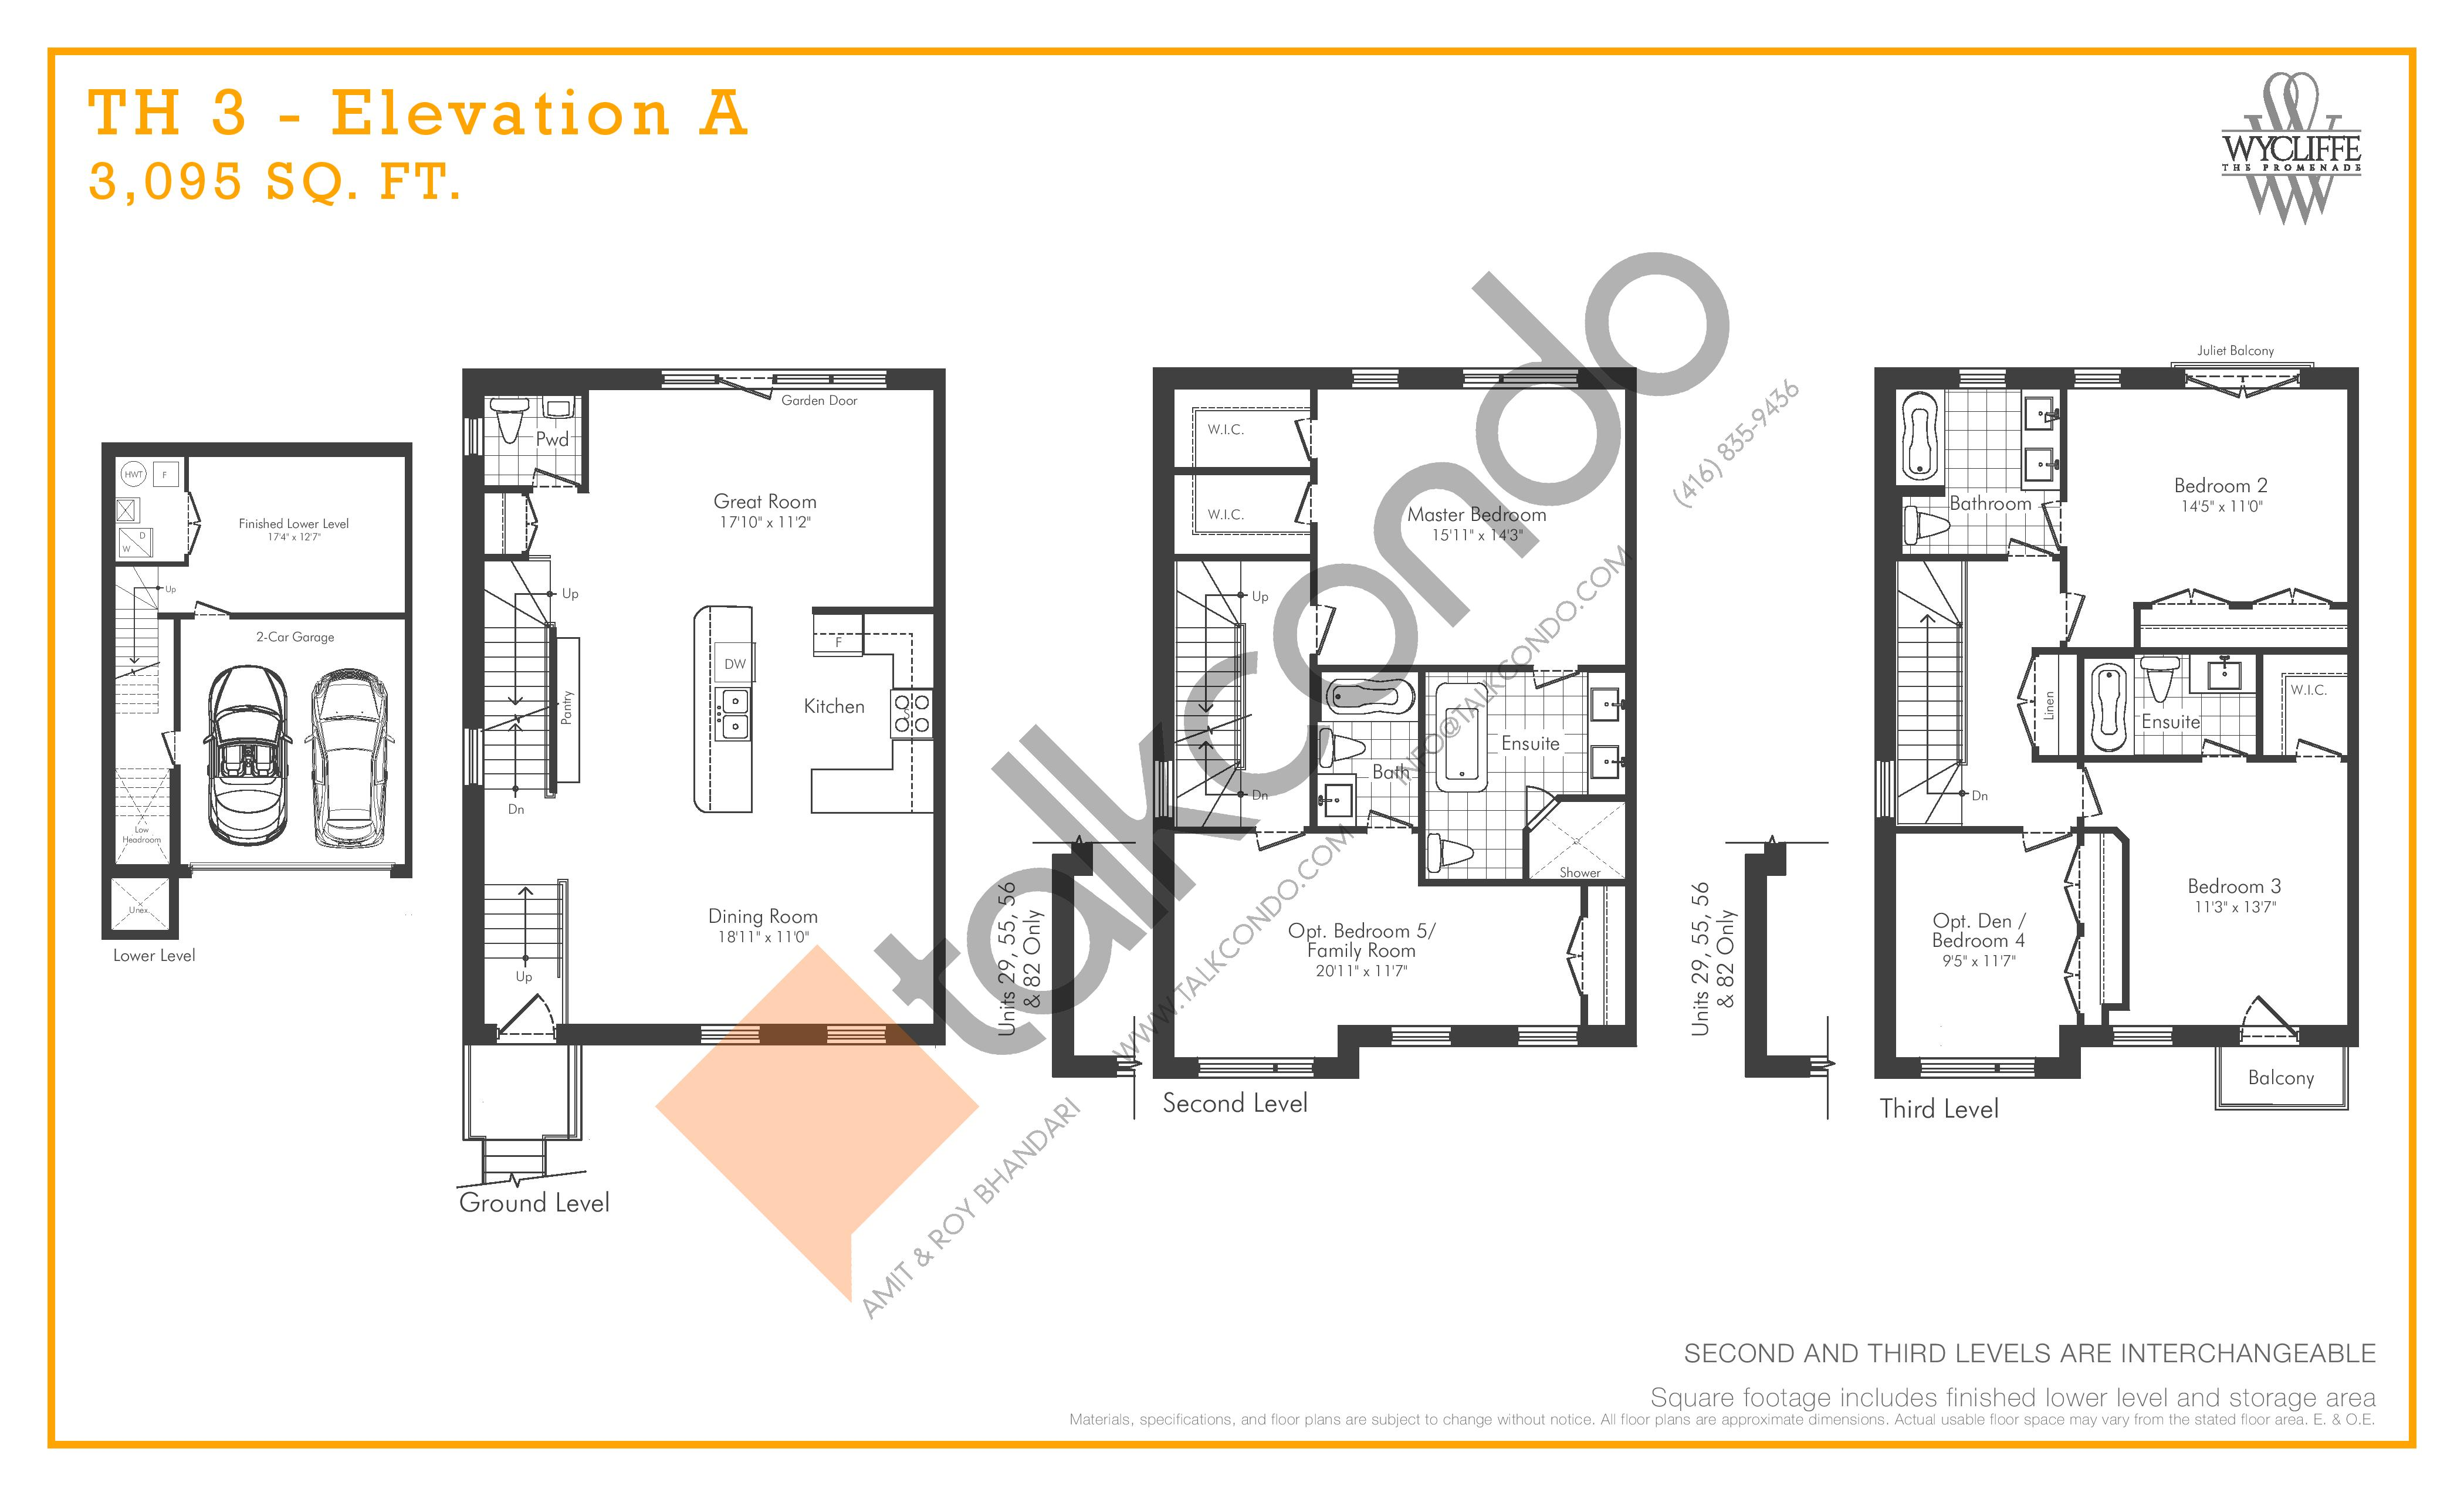 TH 3 - Elevation A Floor Plan at Wycliffe at the Promenade - 3095 sq.ft